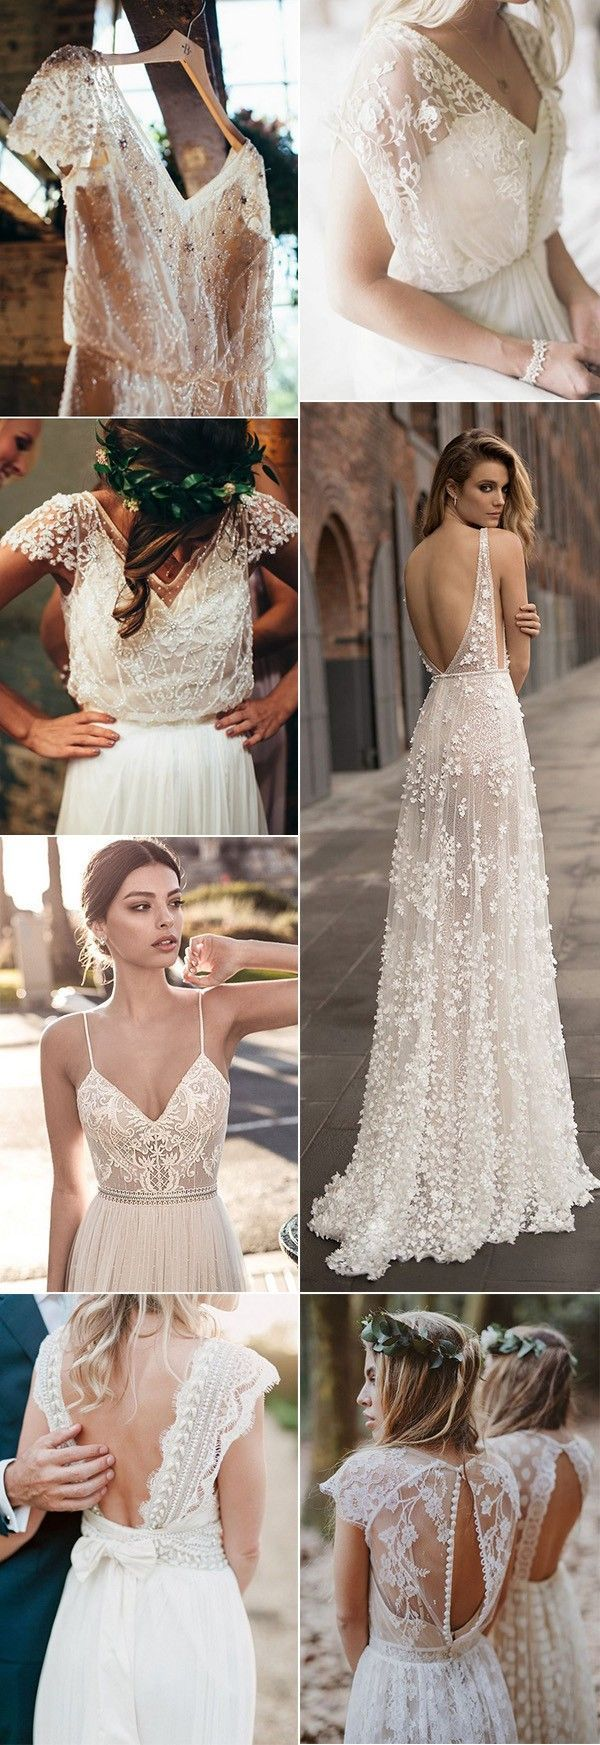 Top 18 Boho Wedding Dresses for 2018 Trends